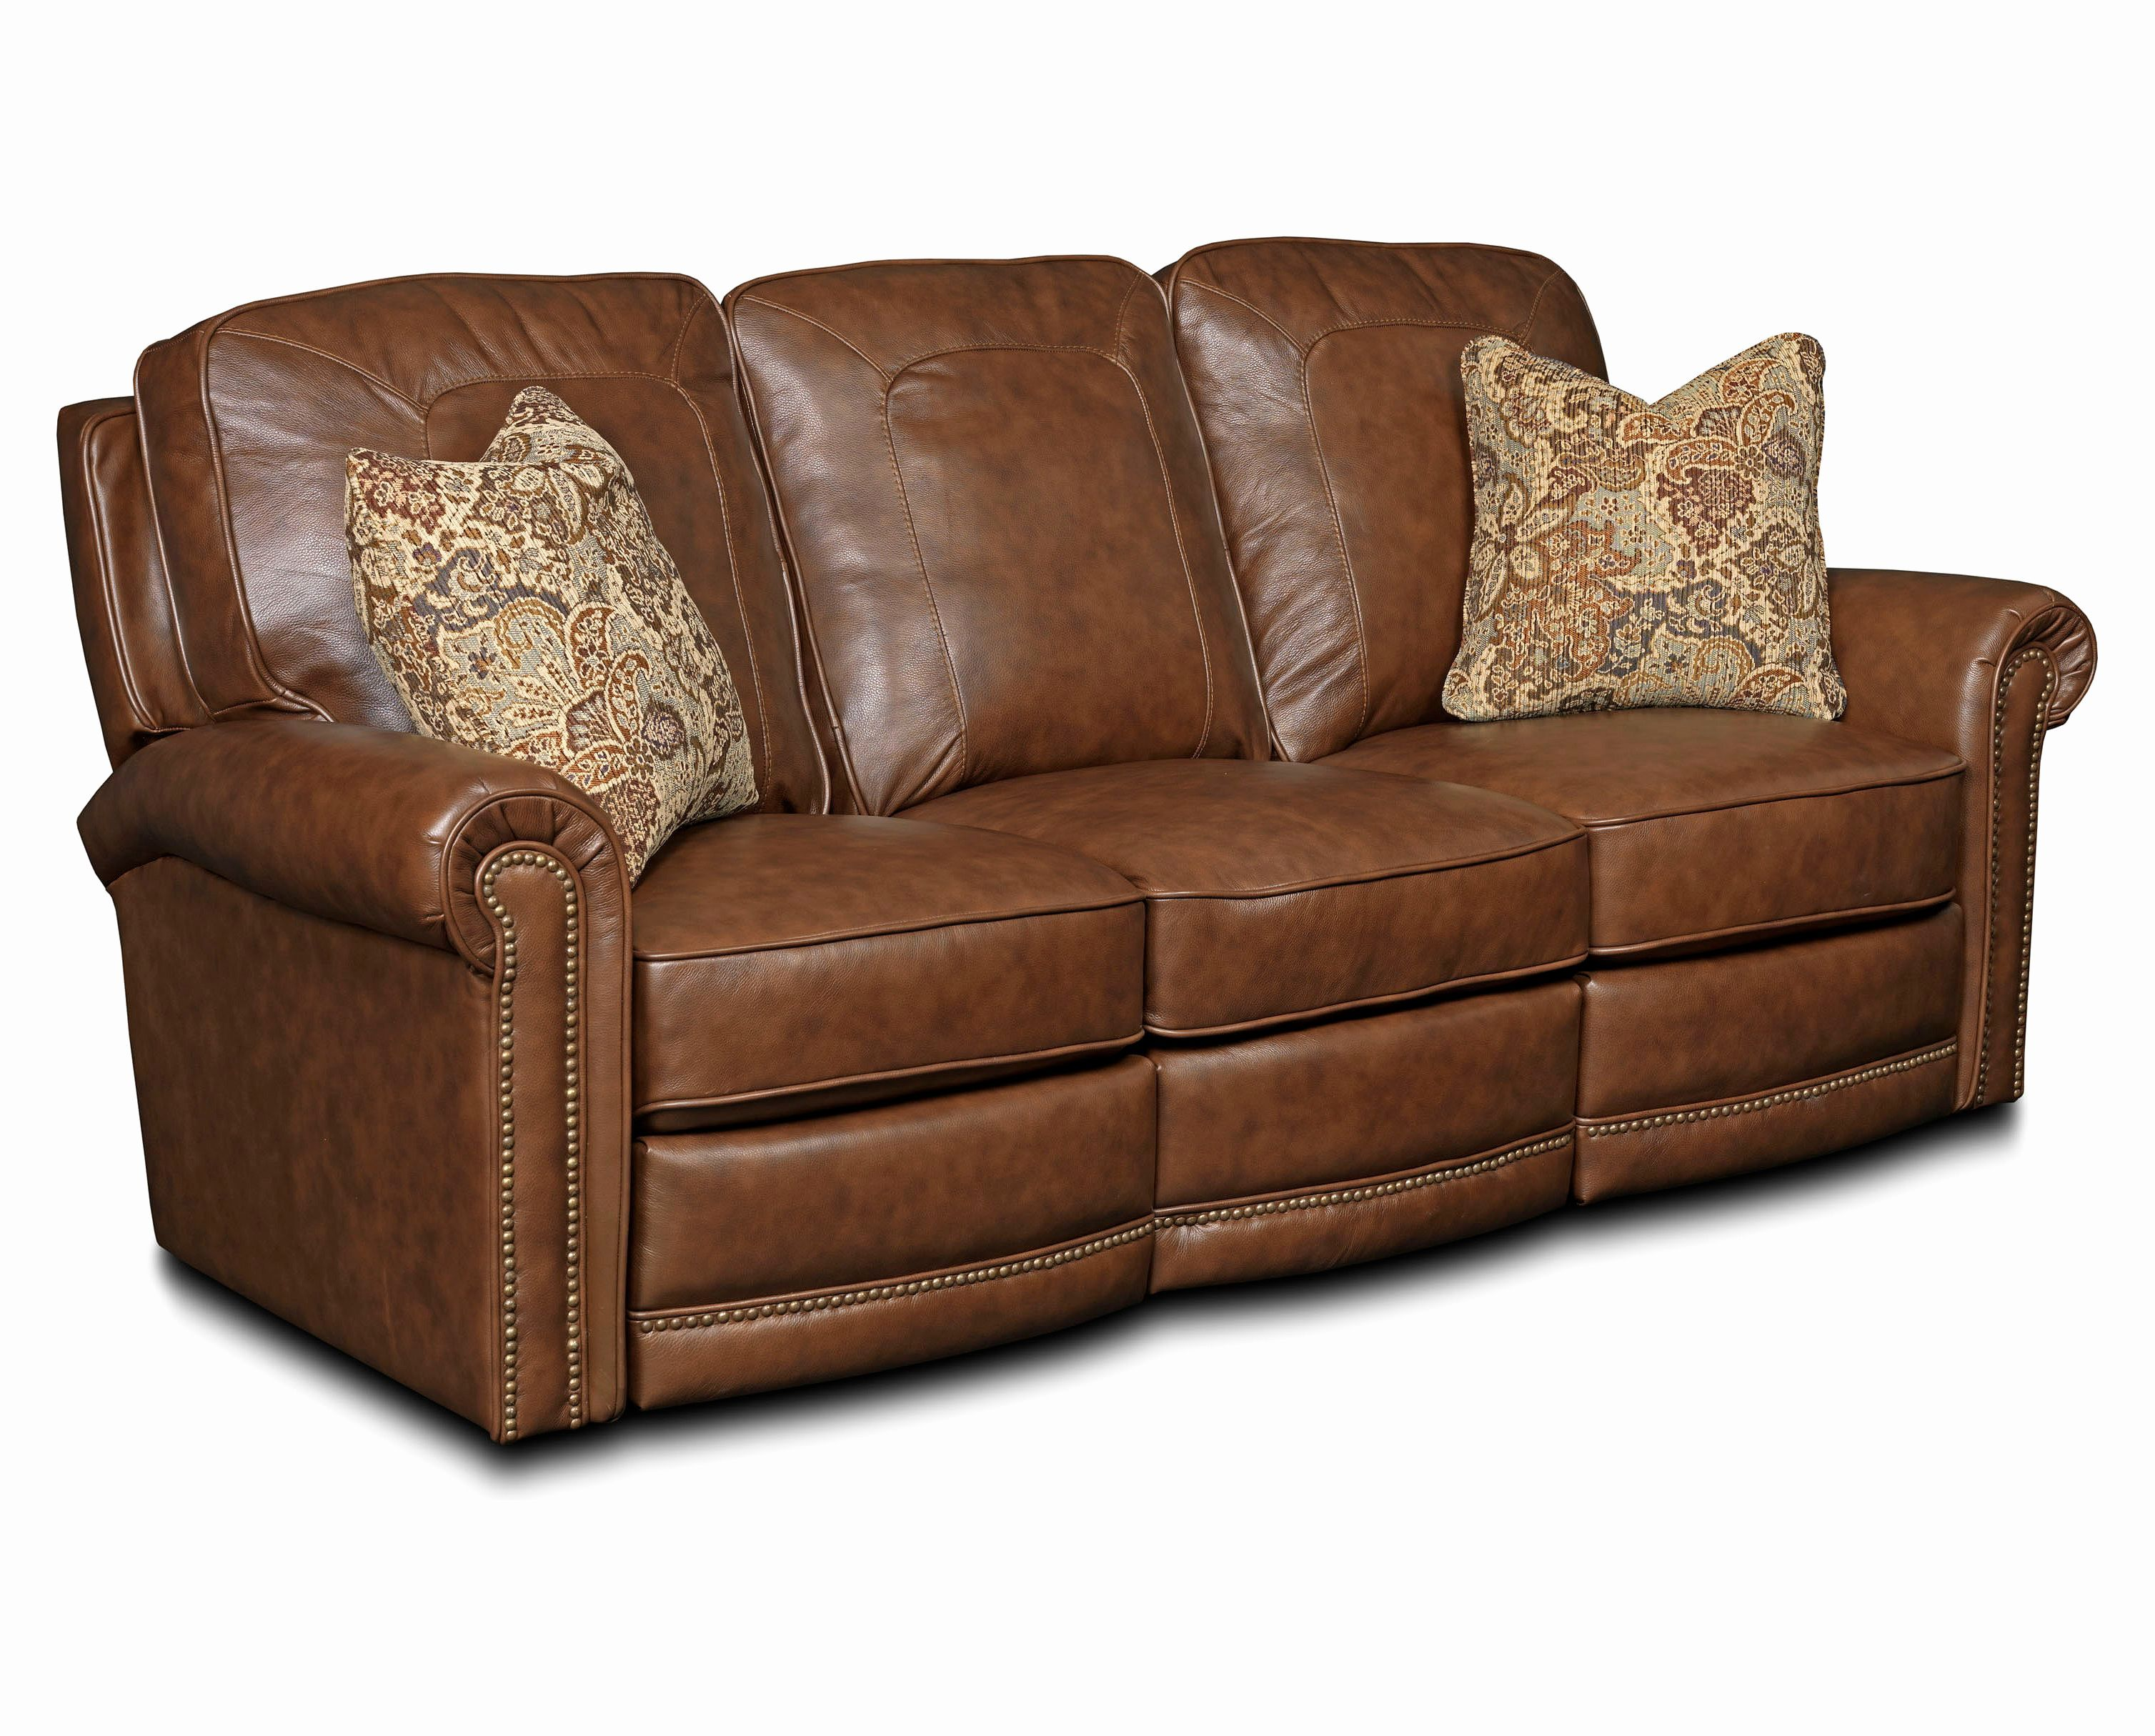 Ideas Sofa Bed Leather Pics Sofa Bed Leather Luxury Furniture Furniture  Baja Convert A Couch And